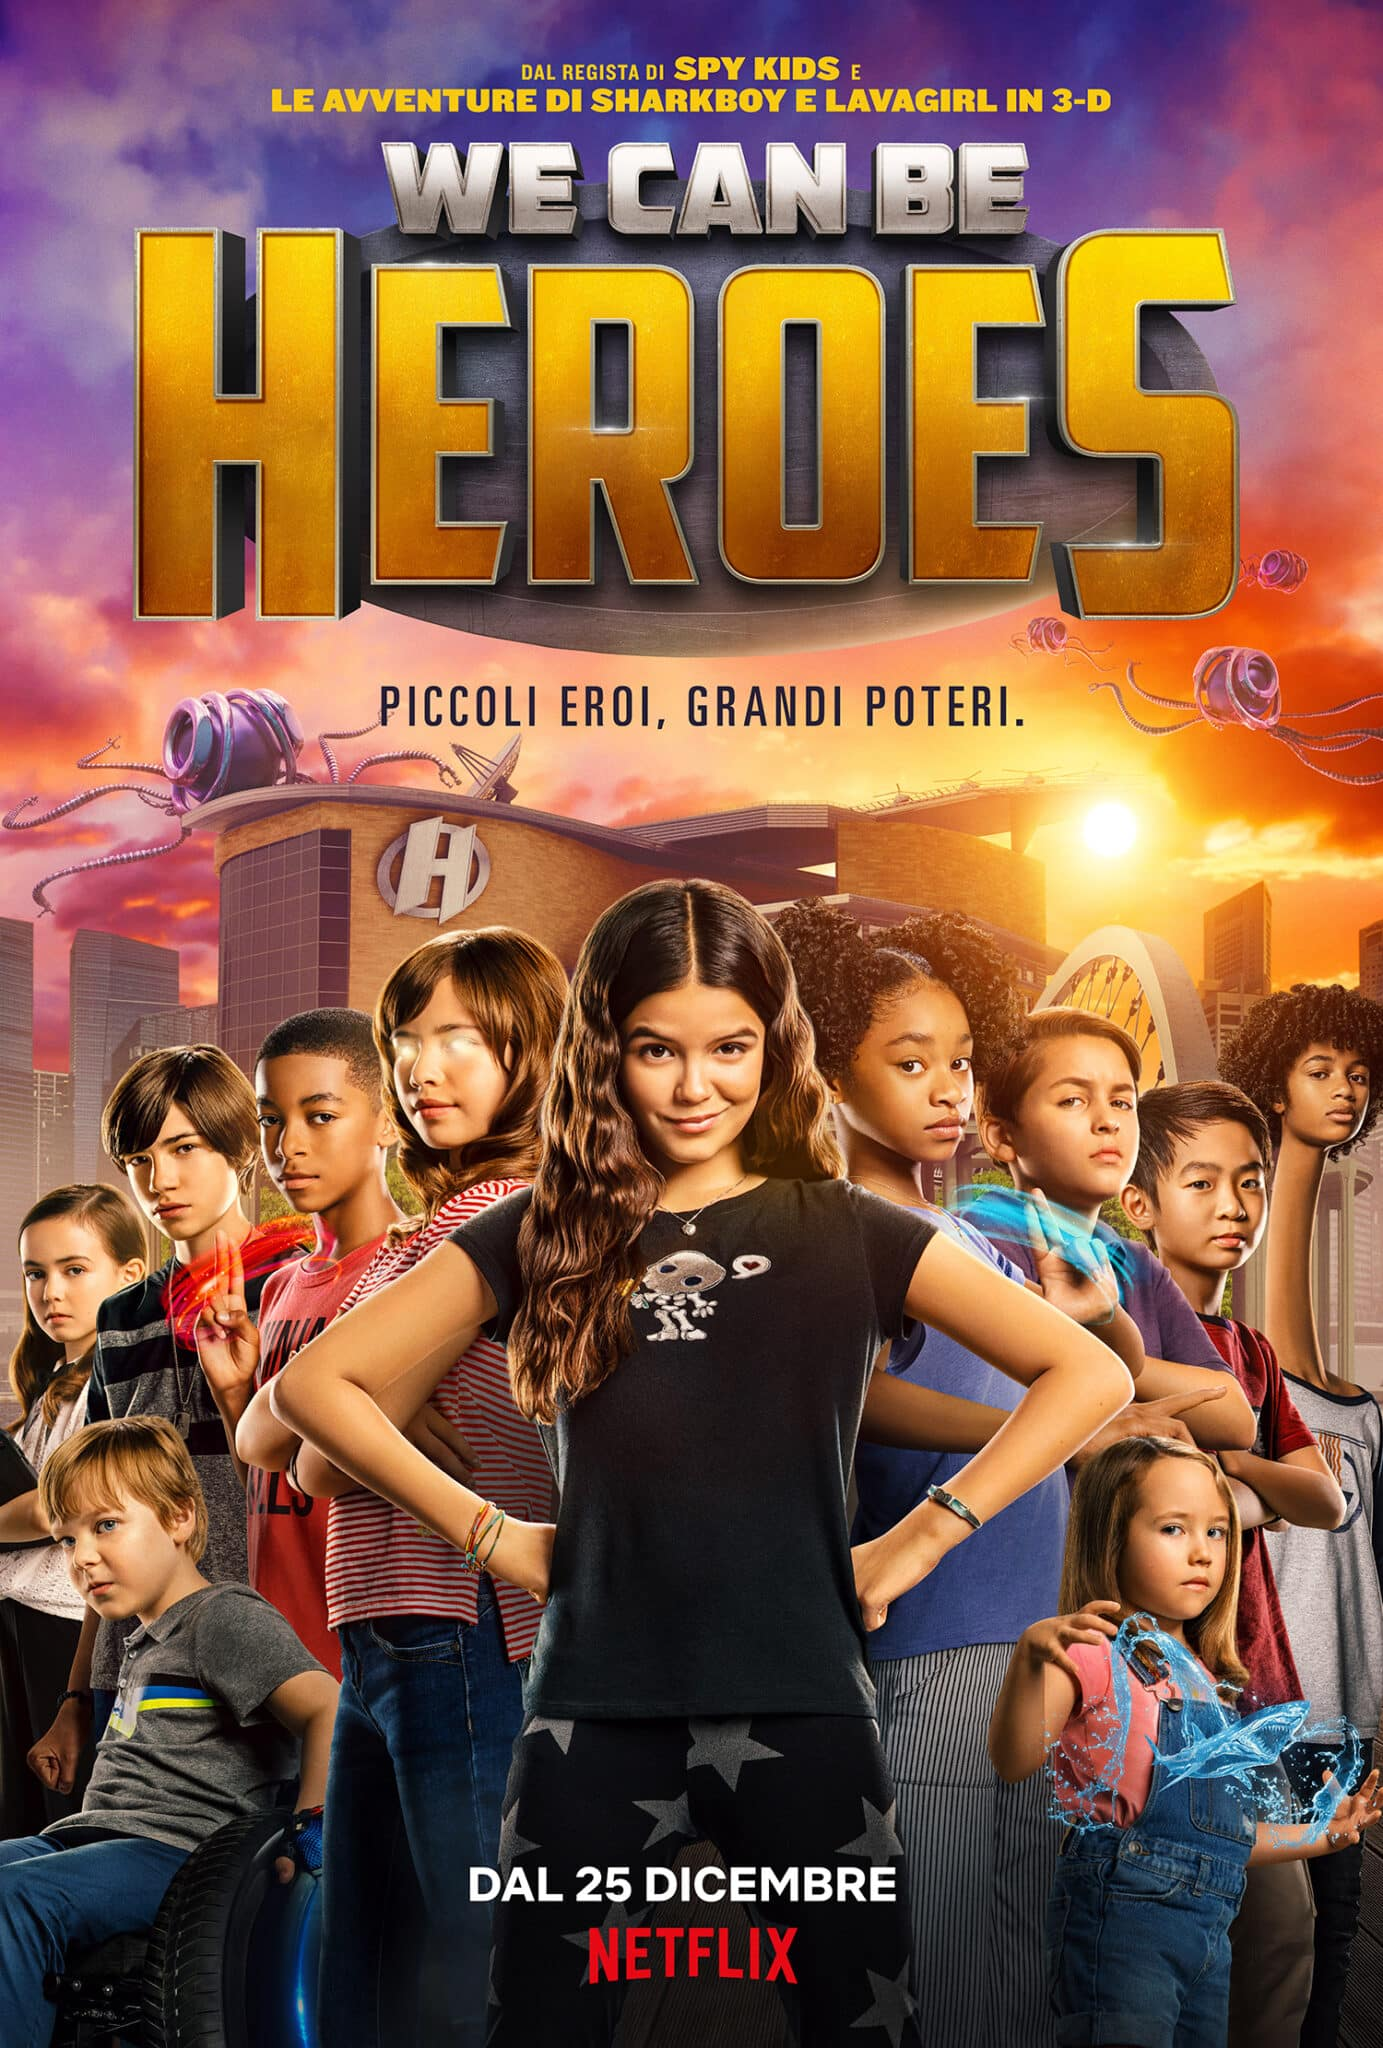 We can be heroes - Cinematographe.it